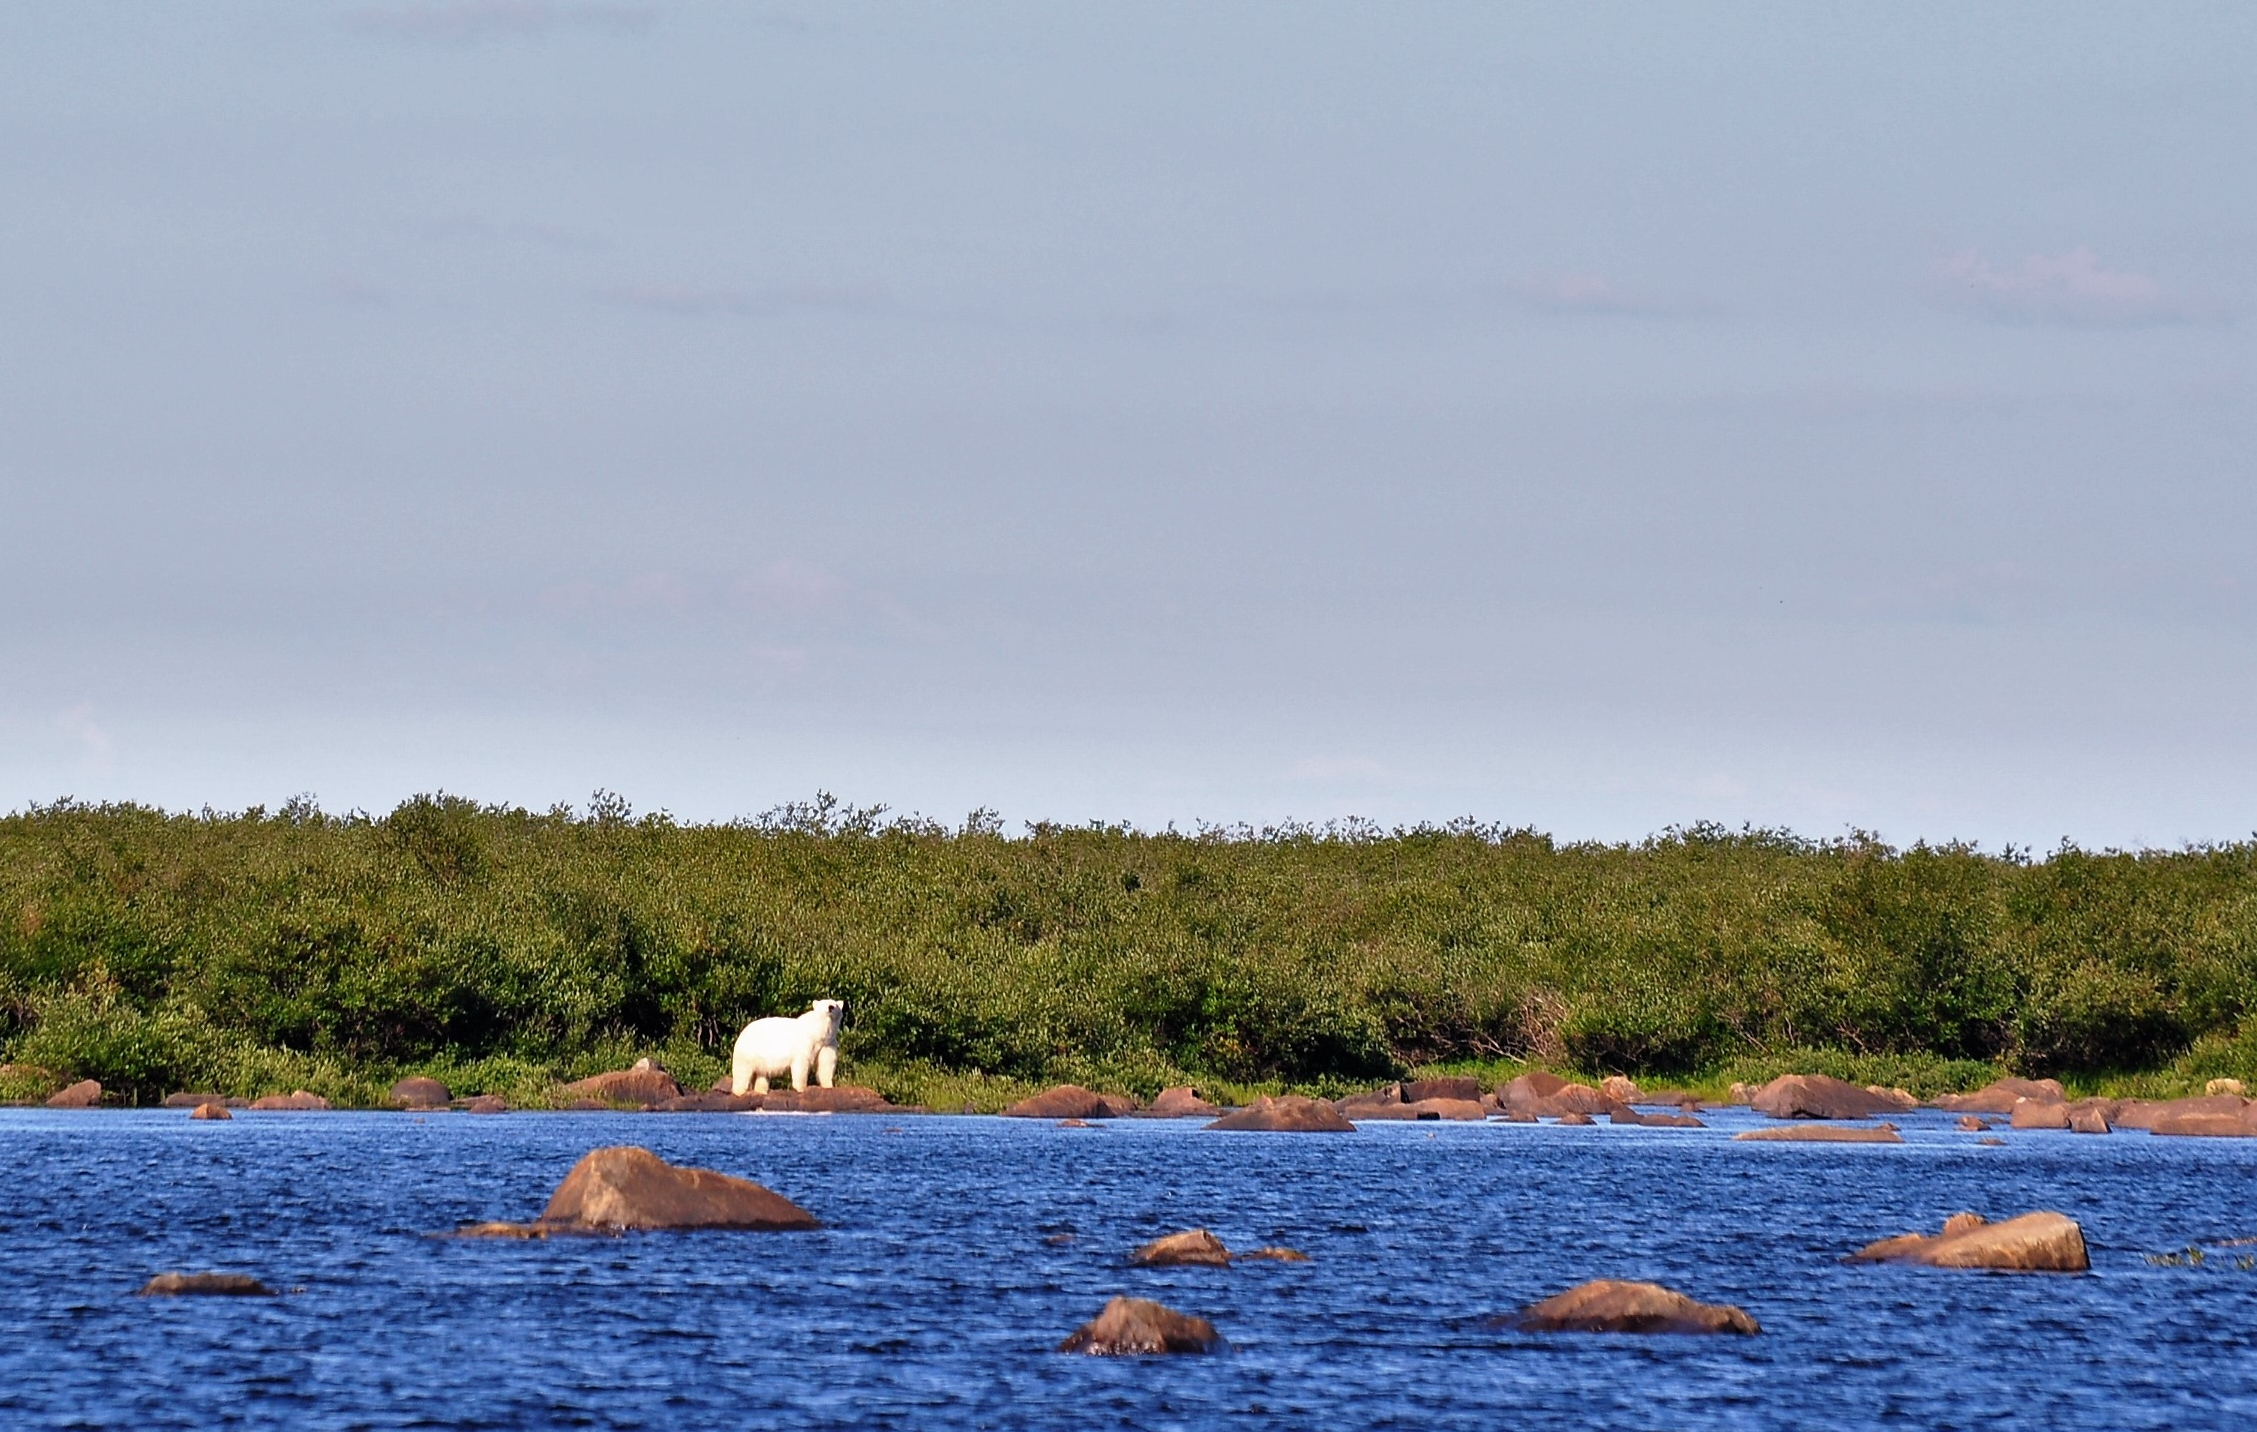 Eisbär am Seal River in der Hudson Bay